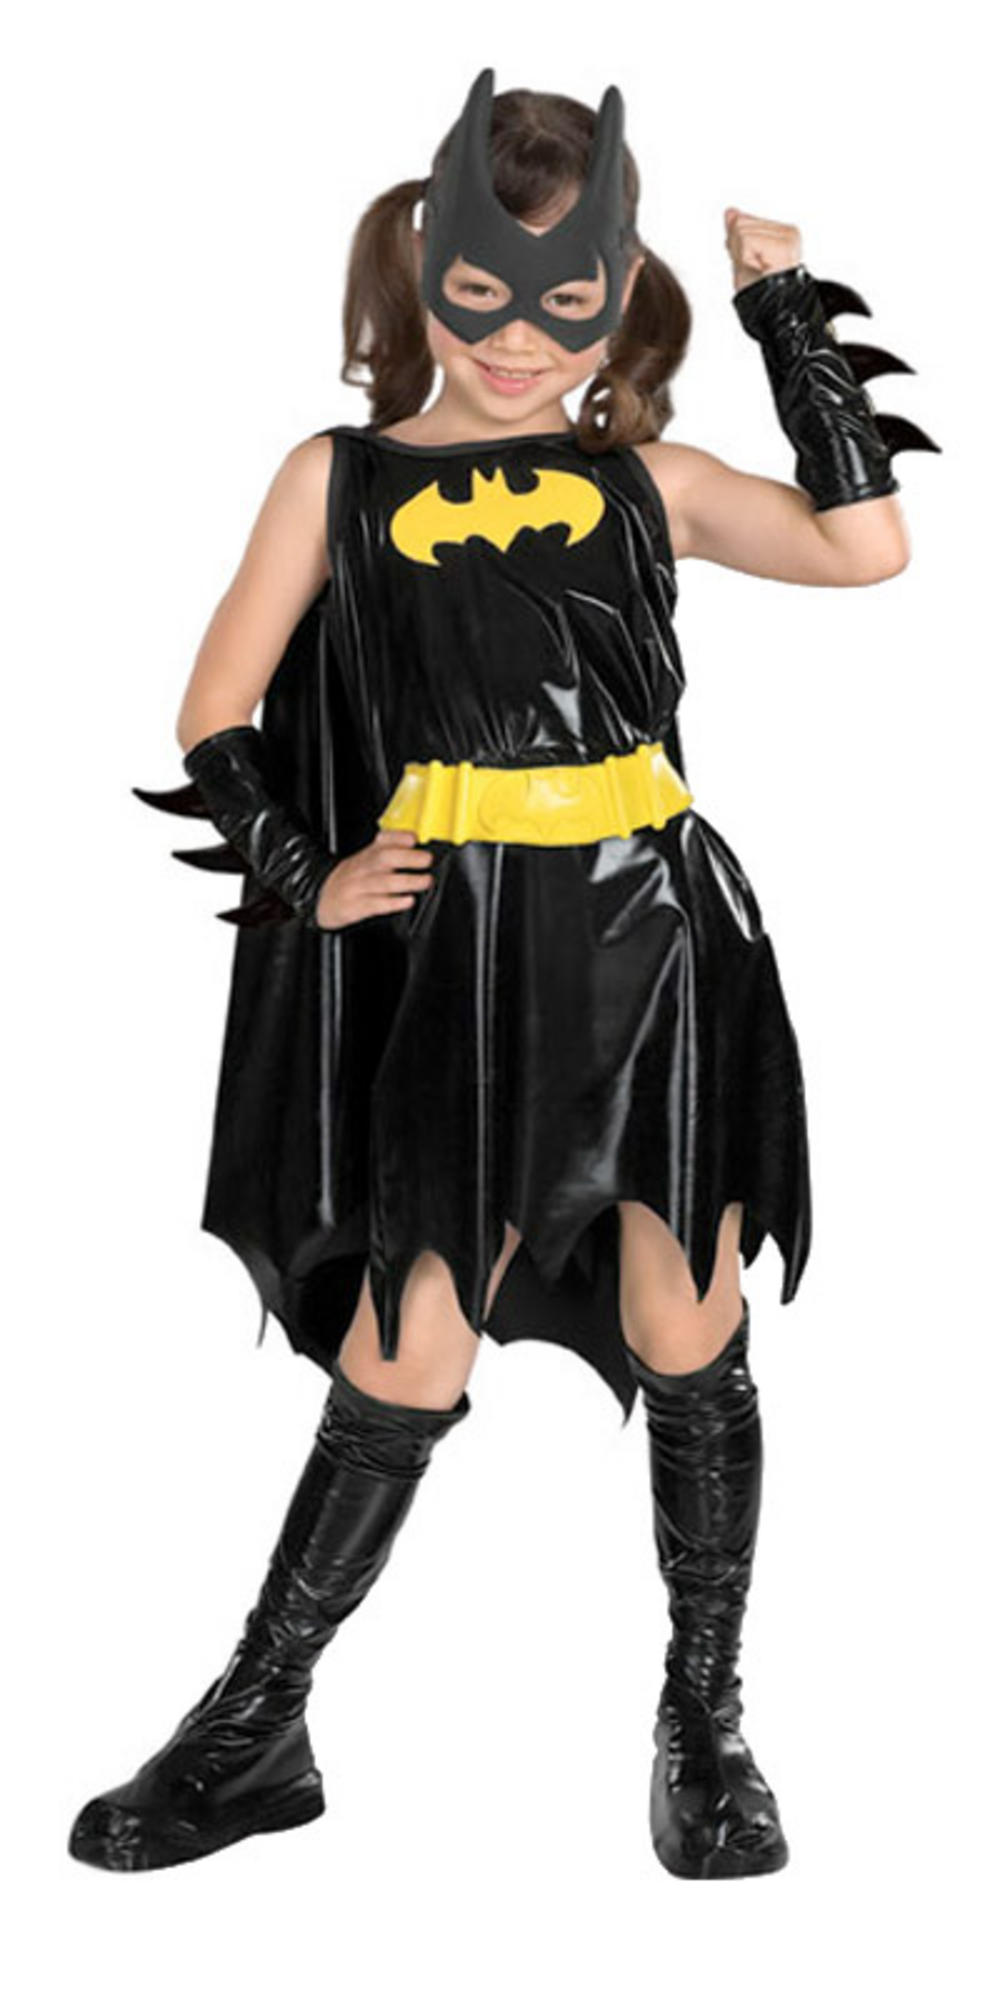 Official Batgirl Fancy Dress Outfit For Girls Halloween Costume